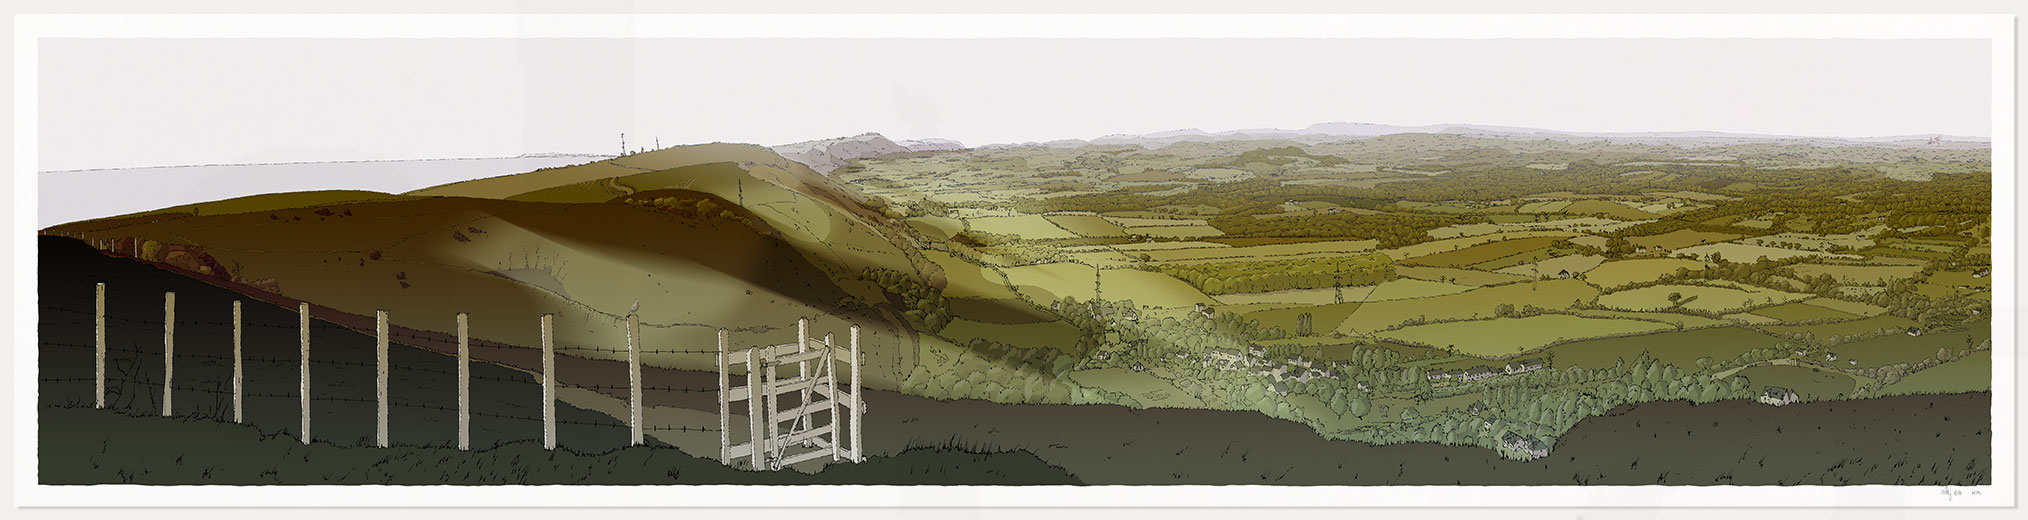 Print named The Lark over the Sussex Weald from Devils Dyke Fall Season by artist alej ez